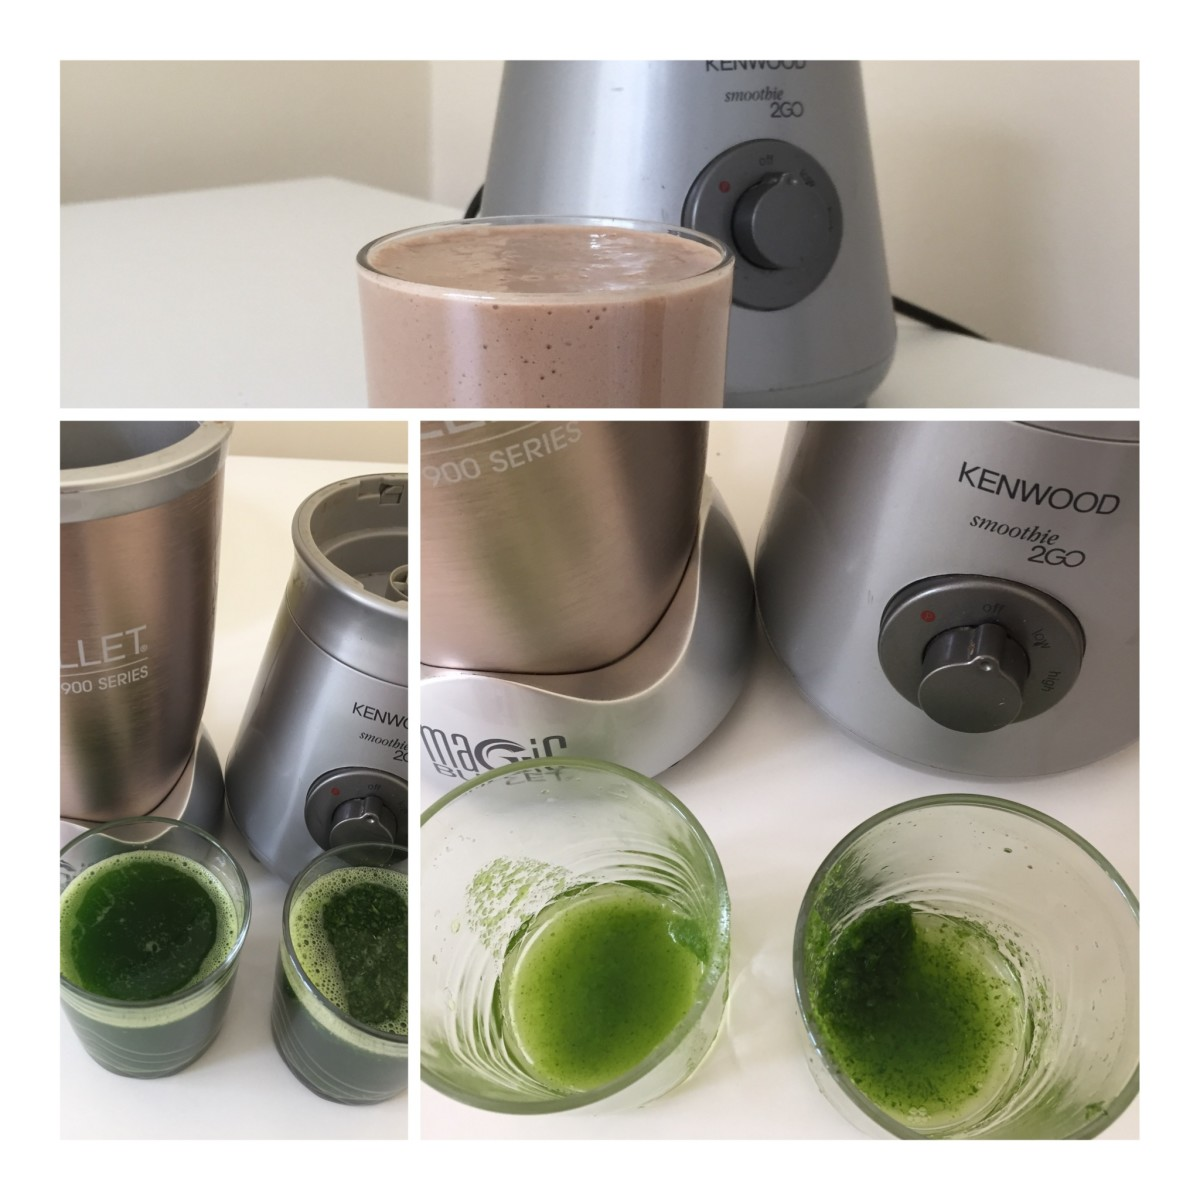 nutribullet-blender-versus-kenwood-smoothie-2go-a-review